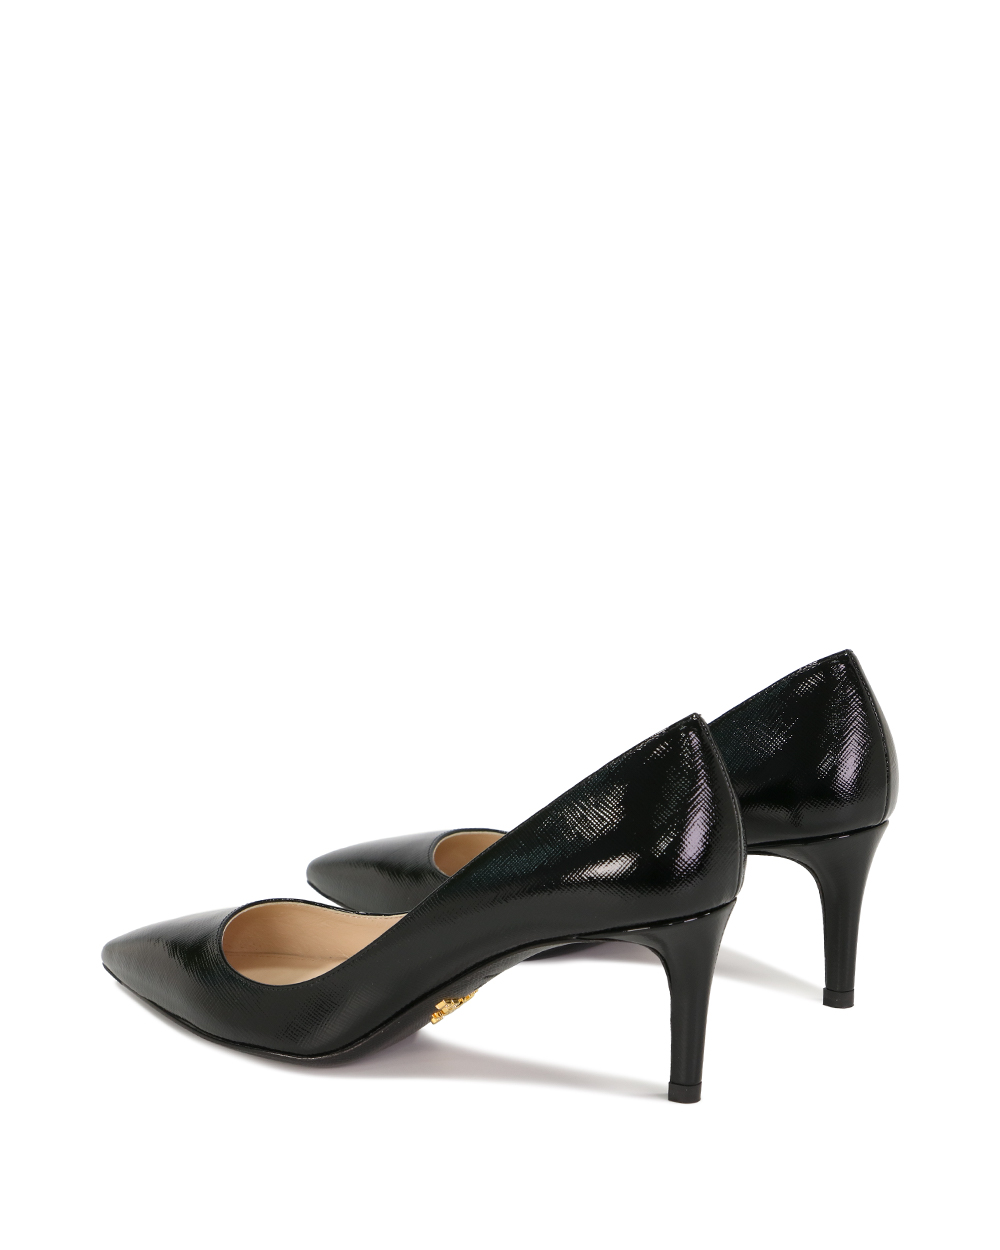 Saffiano Textured Patent Leather Pumps 2